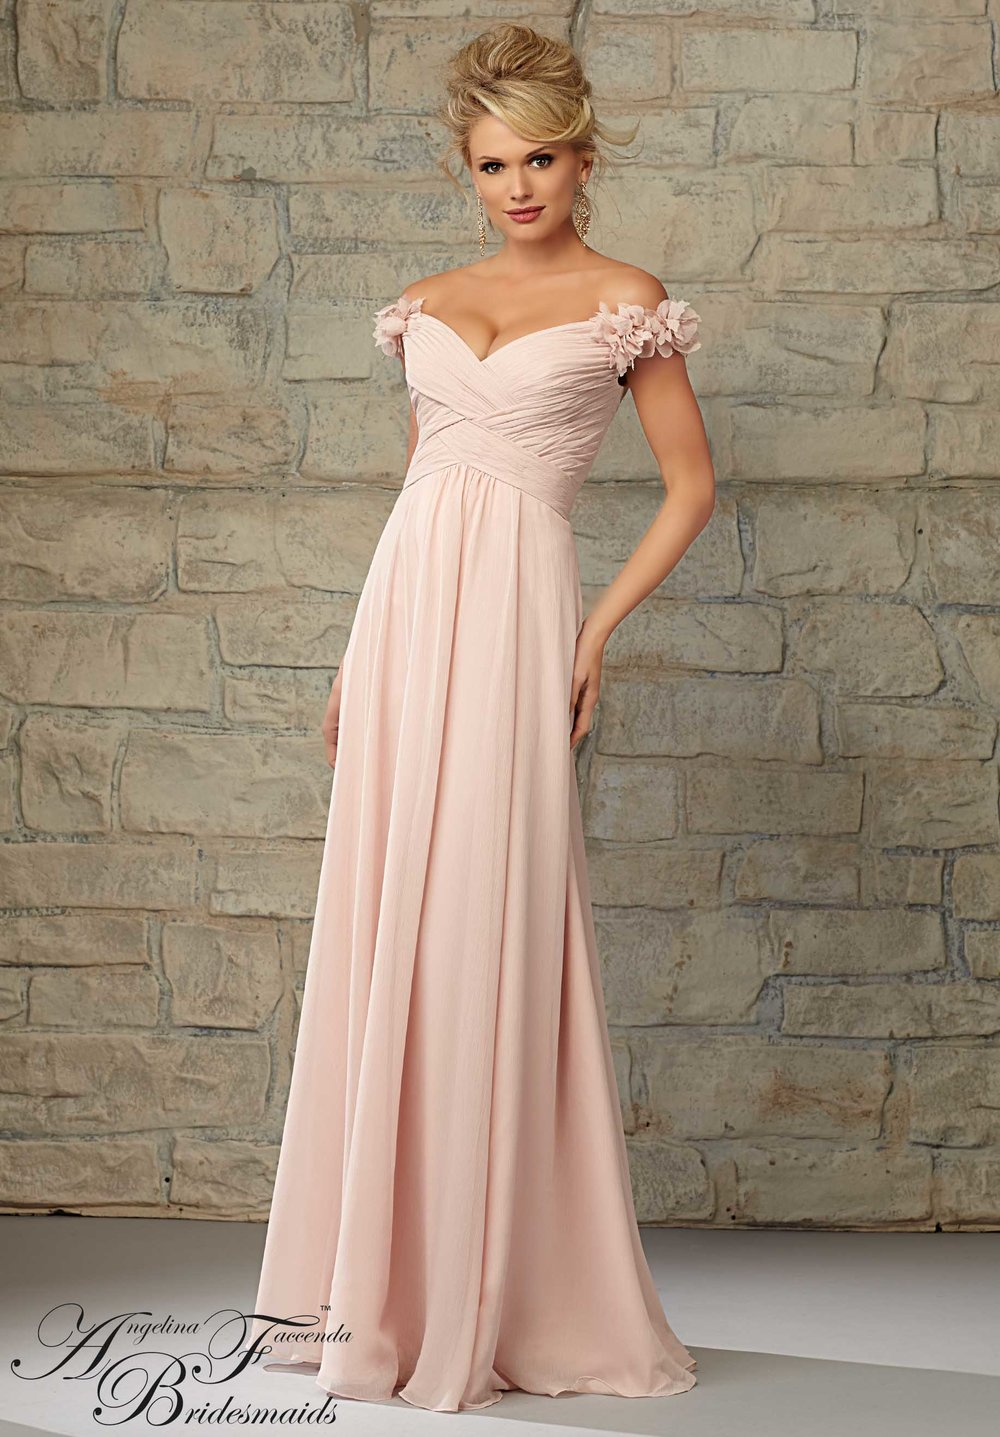 Ruffled Off the Shoulder Chiffon Bridesmaids Dress